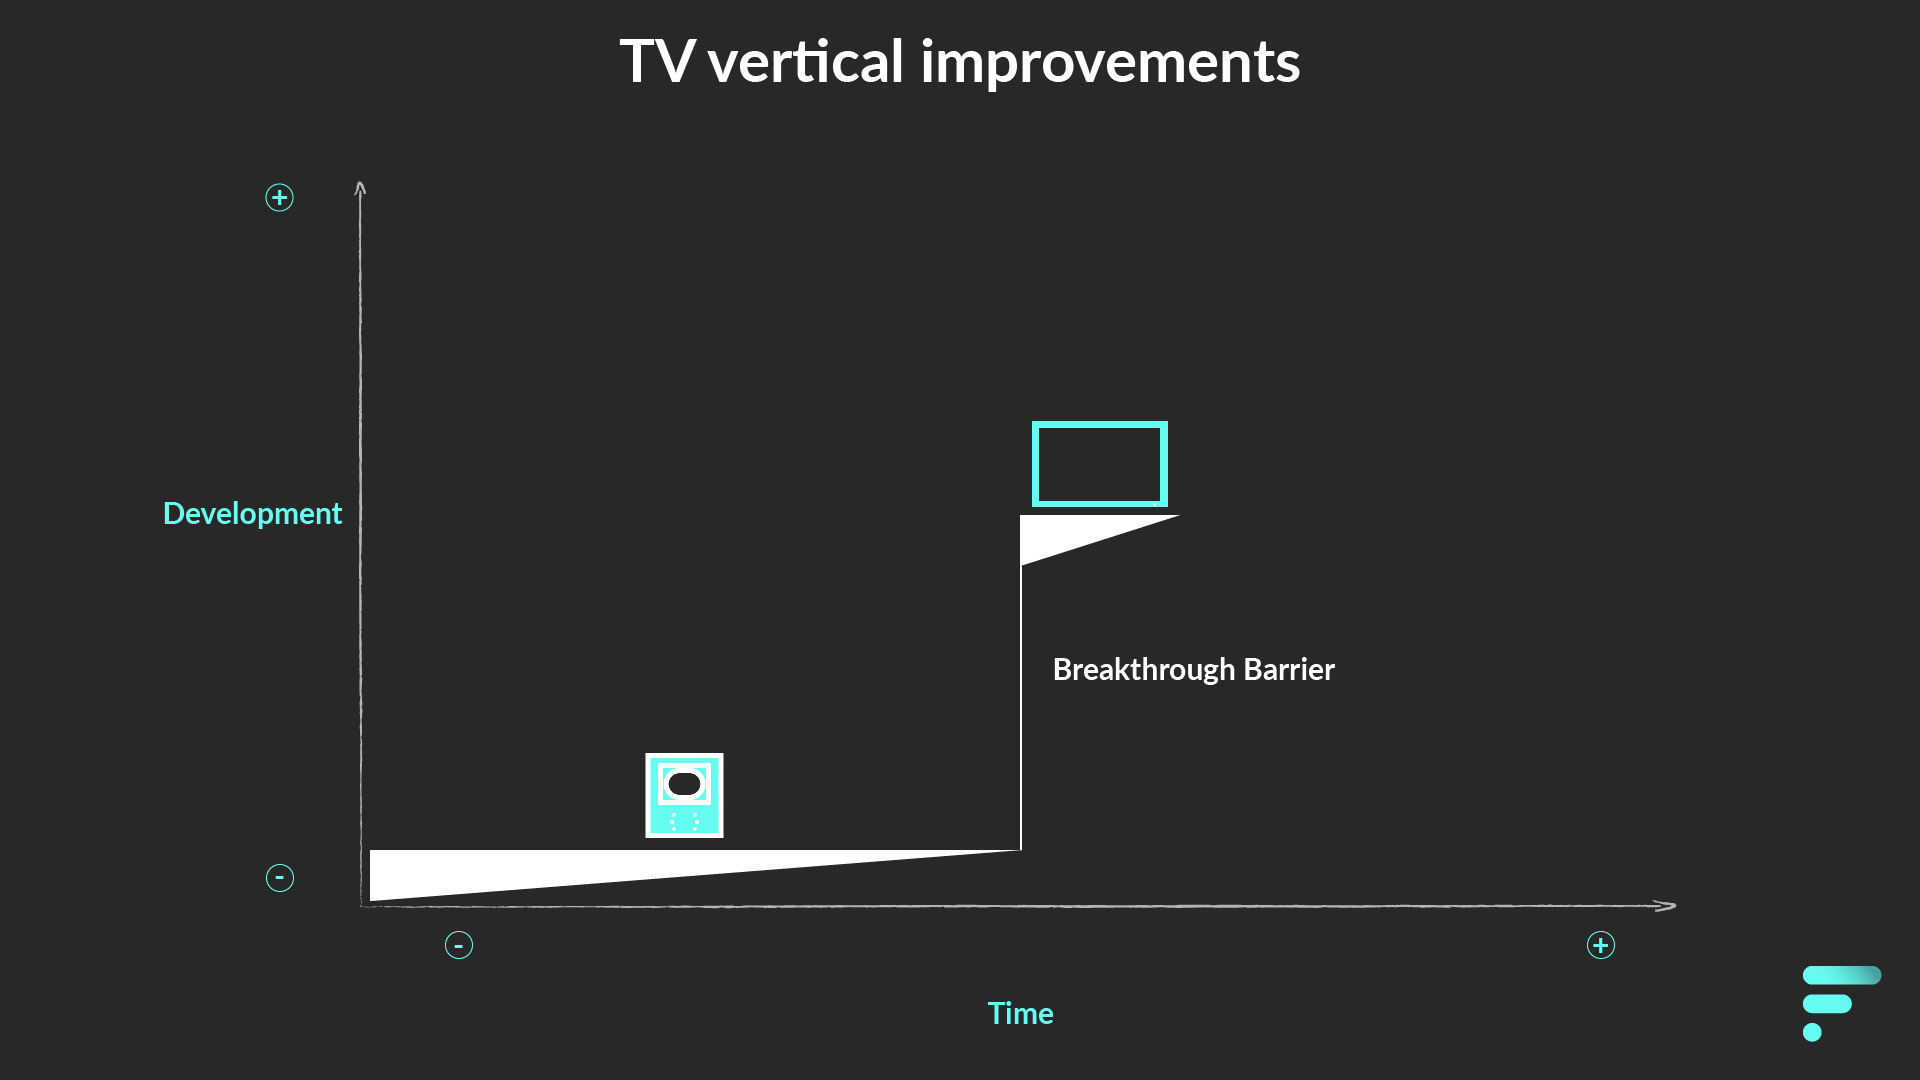 Vertical improvements on Television